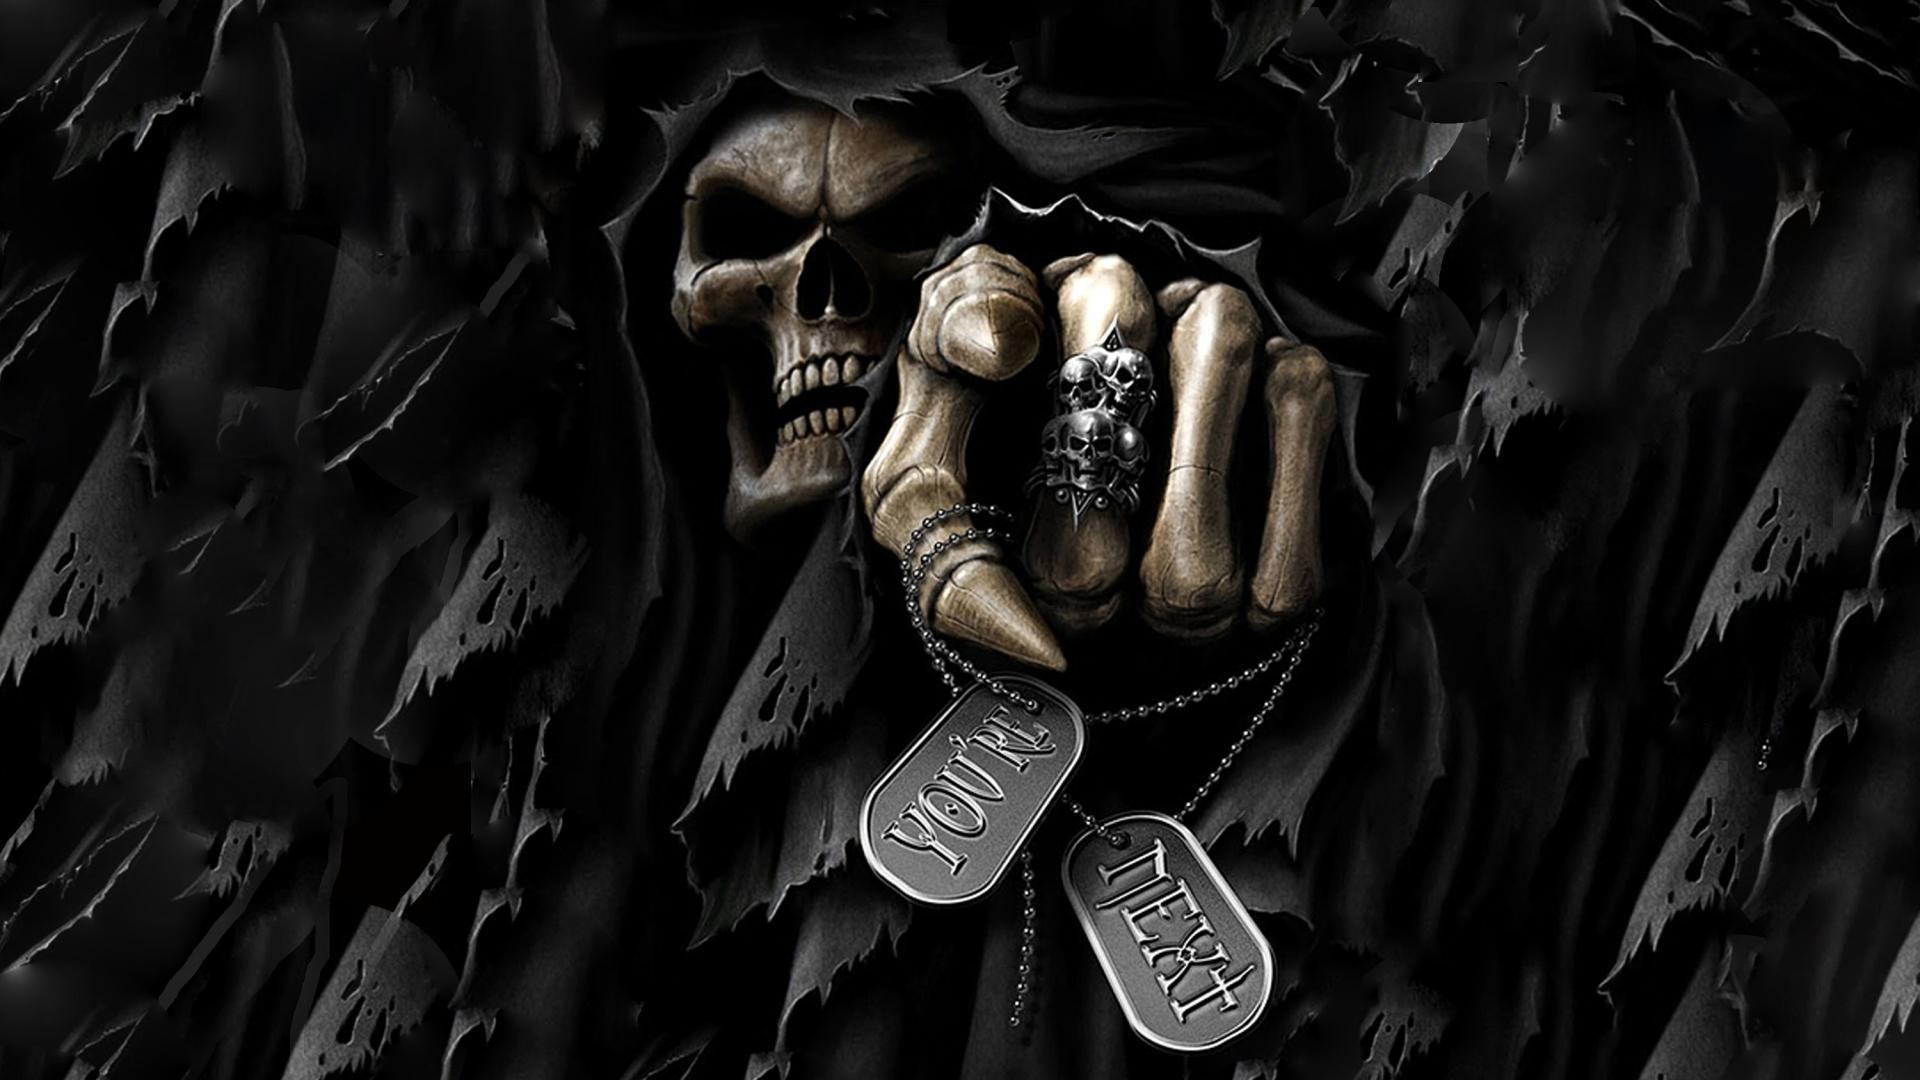 Grim Reaper Live Wallpaper for Android - APK Download